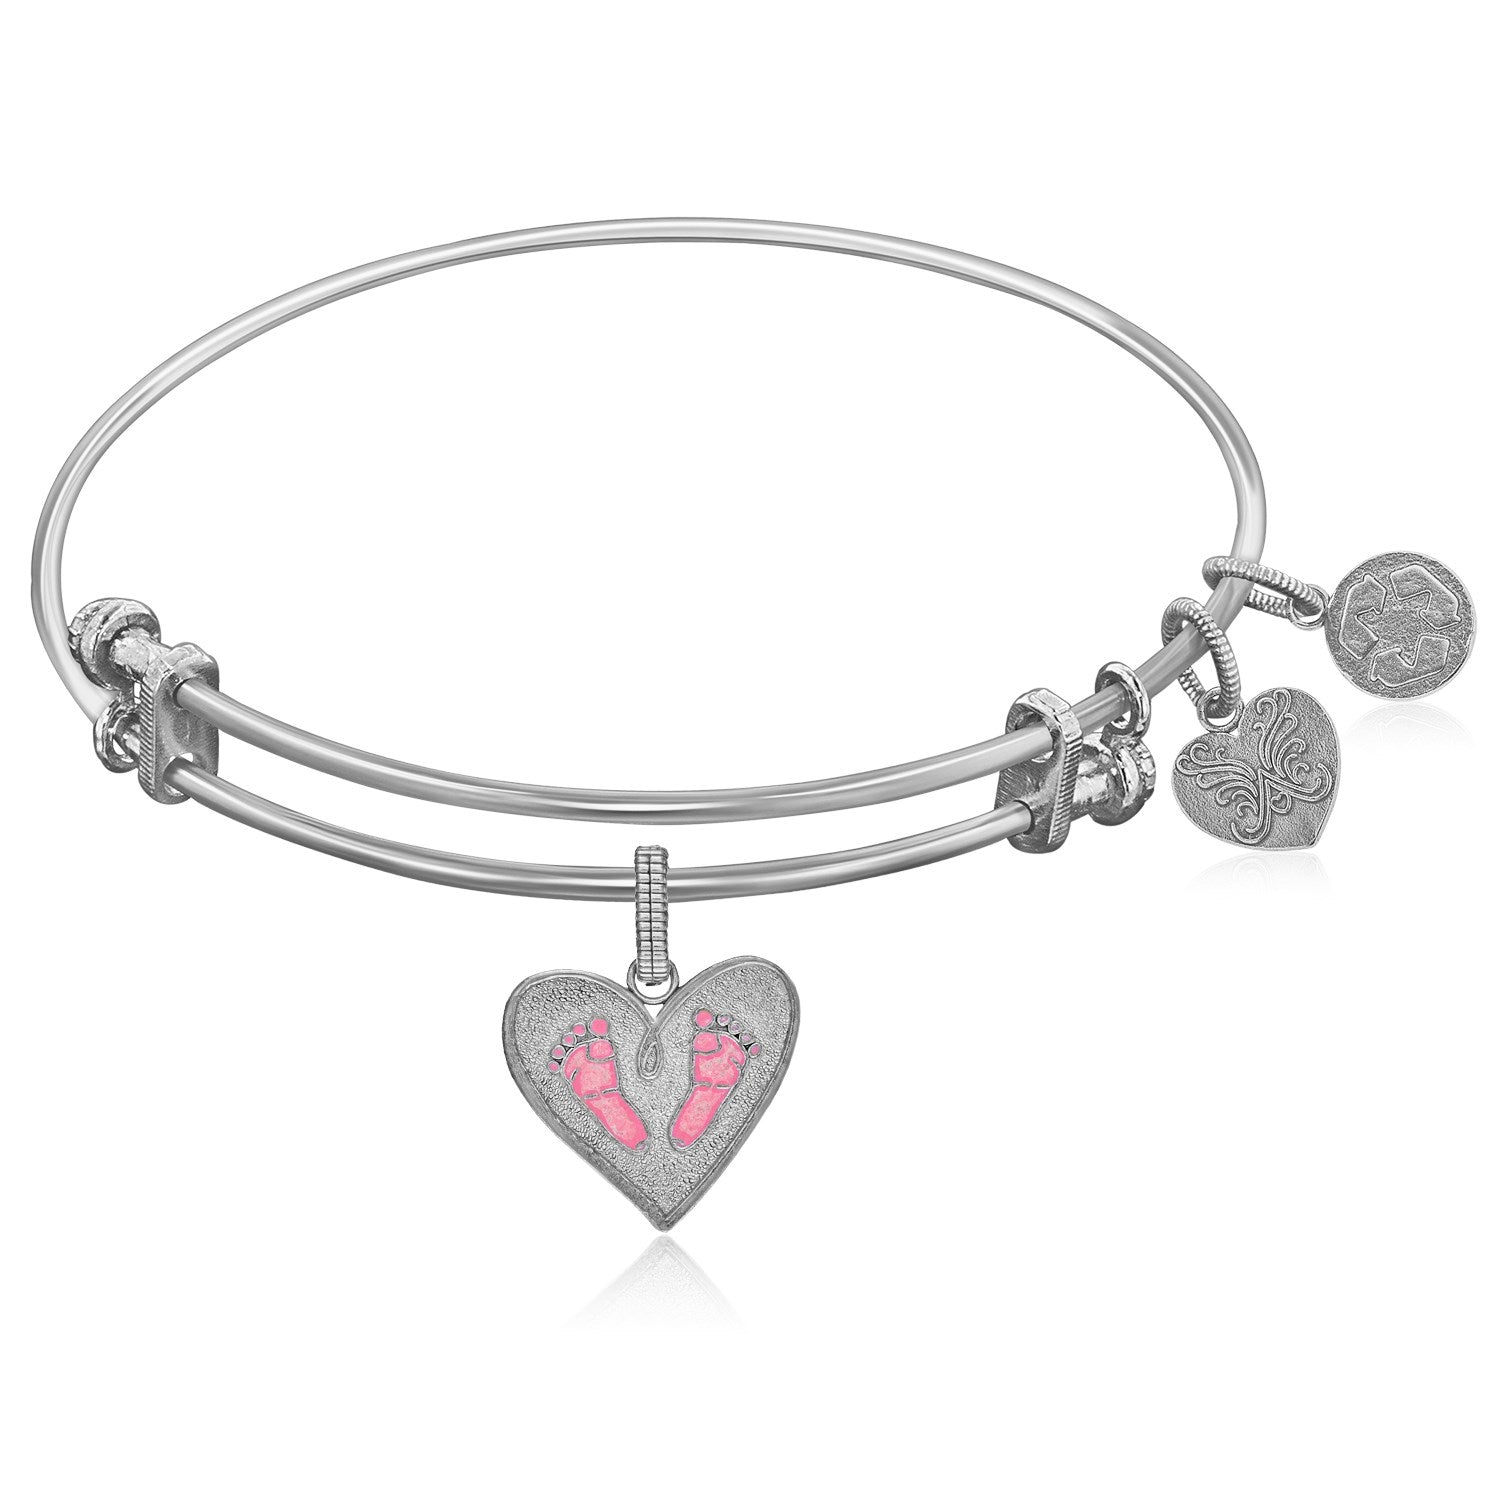 Expandable White Tone Brass Bangle with Pink Enamel Baby Foot Print Symbol